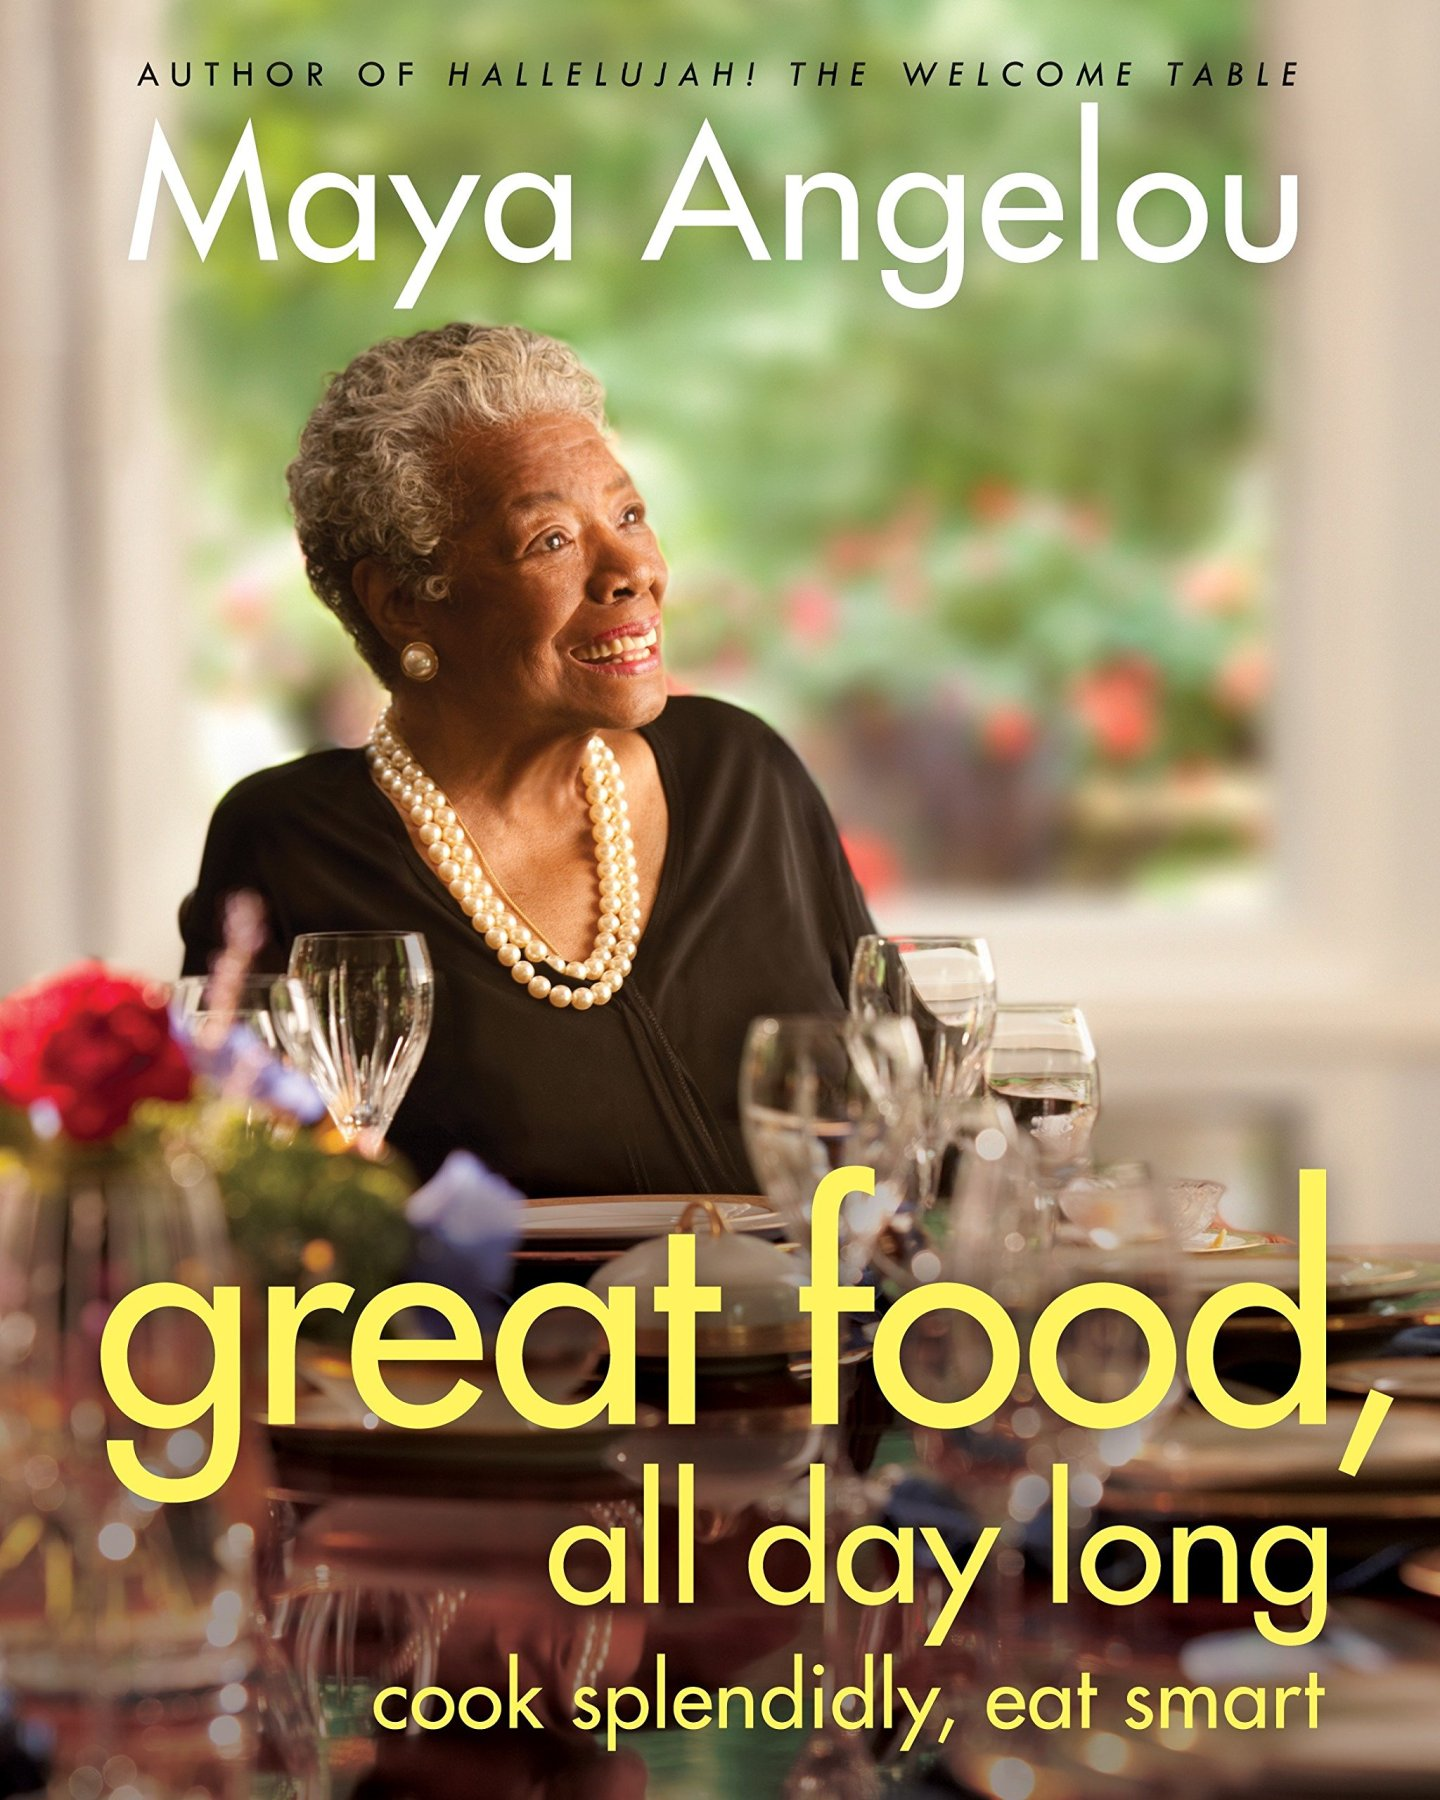 Maya-Angelou-Books-1440x1800 Arkansas Royalty: Maya Angelou Books to Add to Your Collection